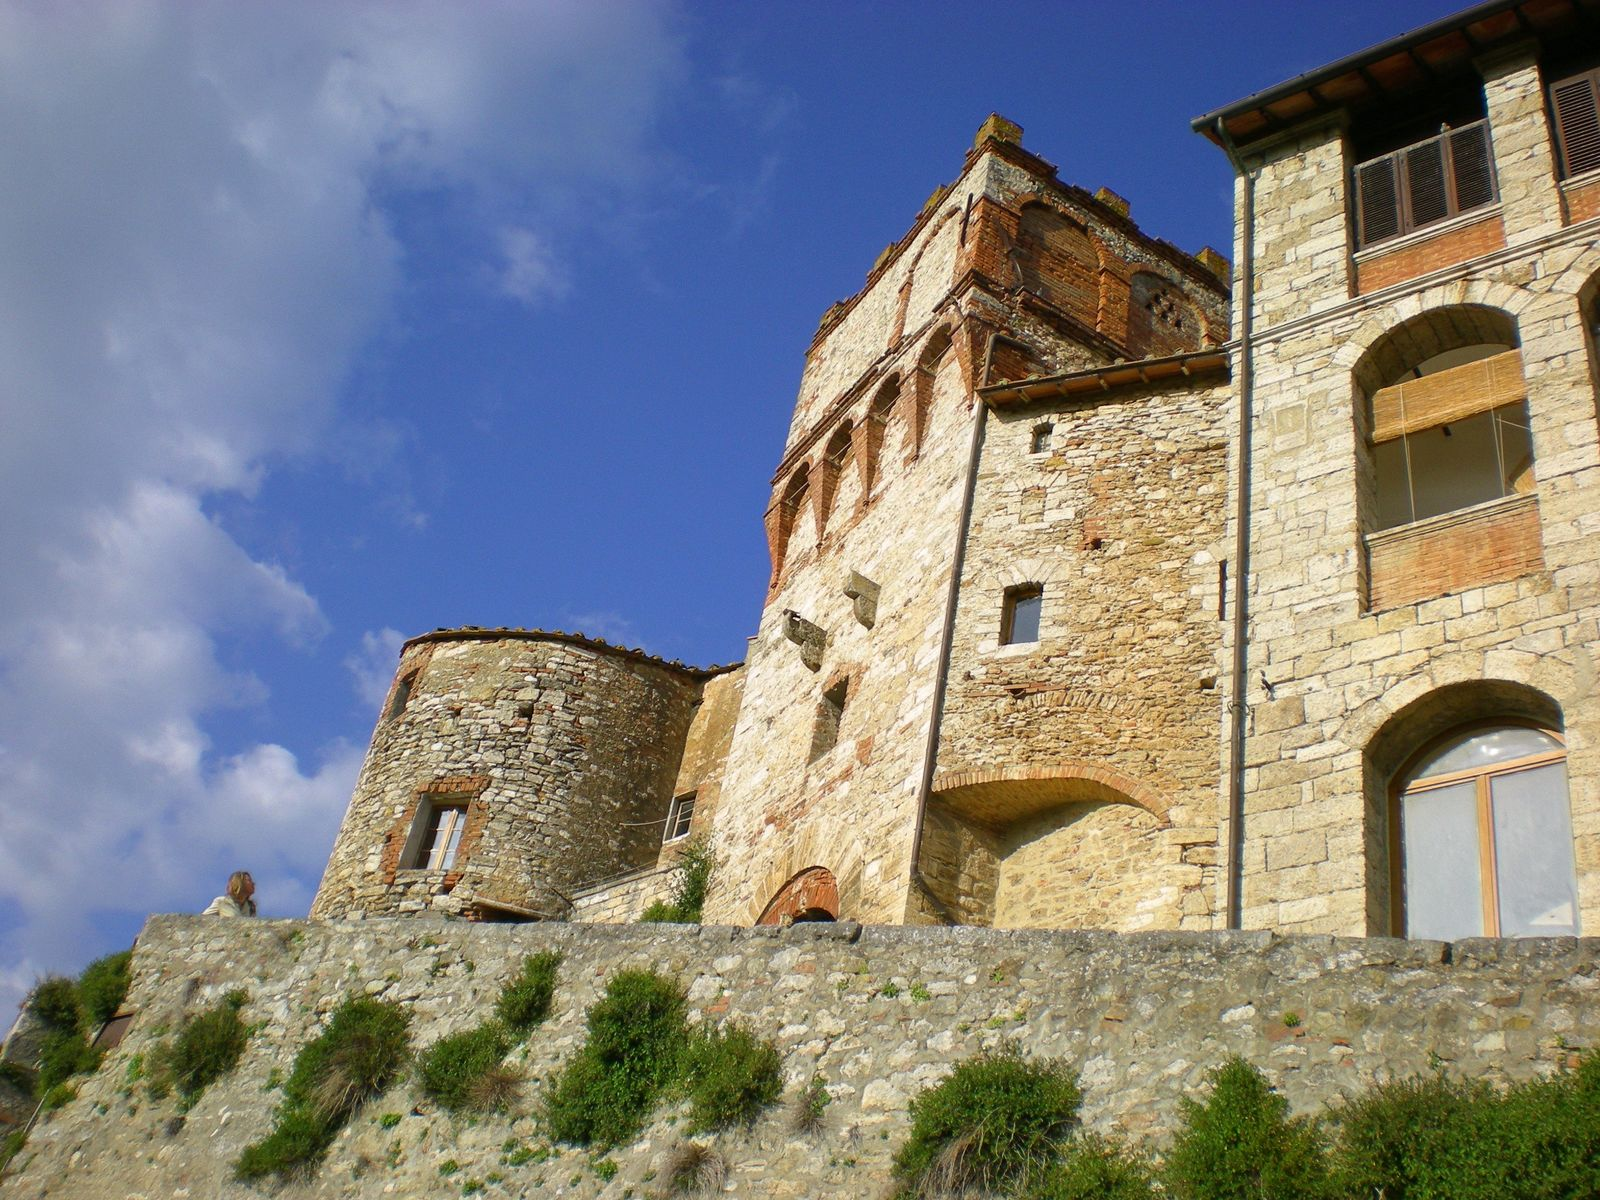 Rapolano Terme - Rapolano, a treasure chest of historical elements - Tuscany, Beautiful Everywhere